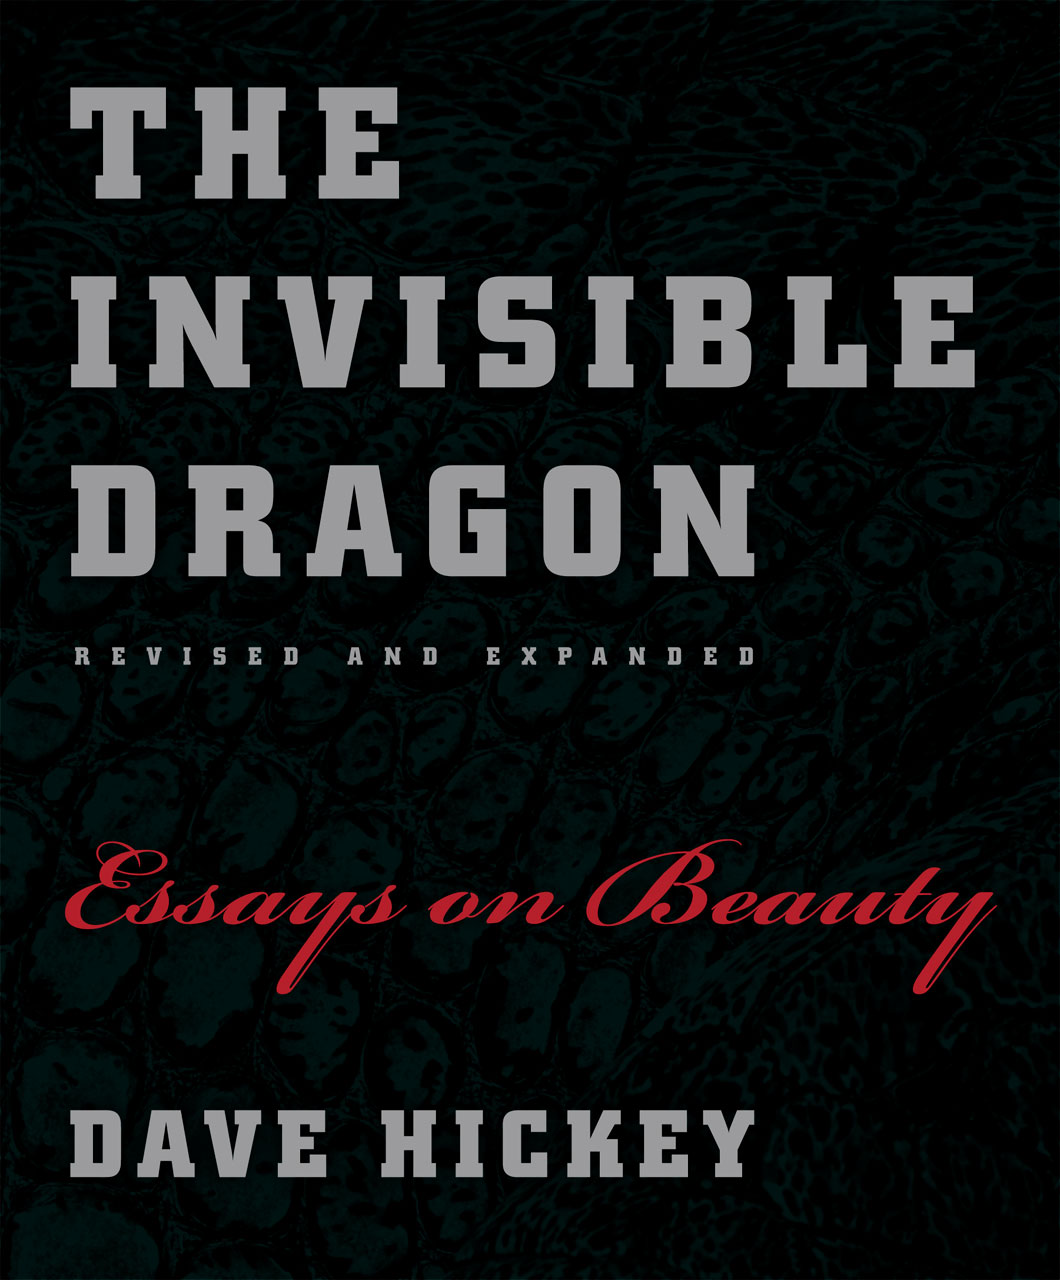 beauty essays the invisible dragon essays on beauty revised and expanded hickey